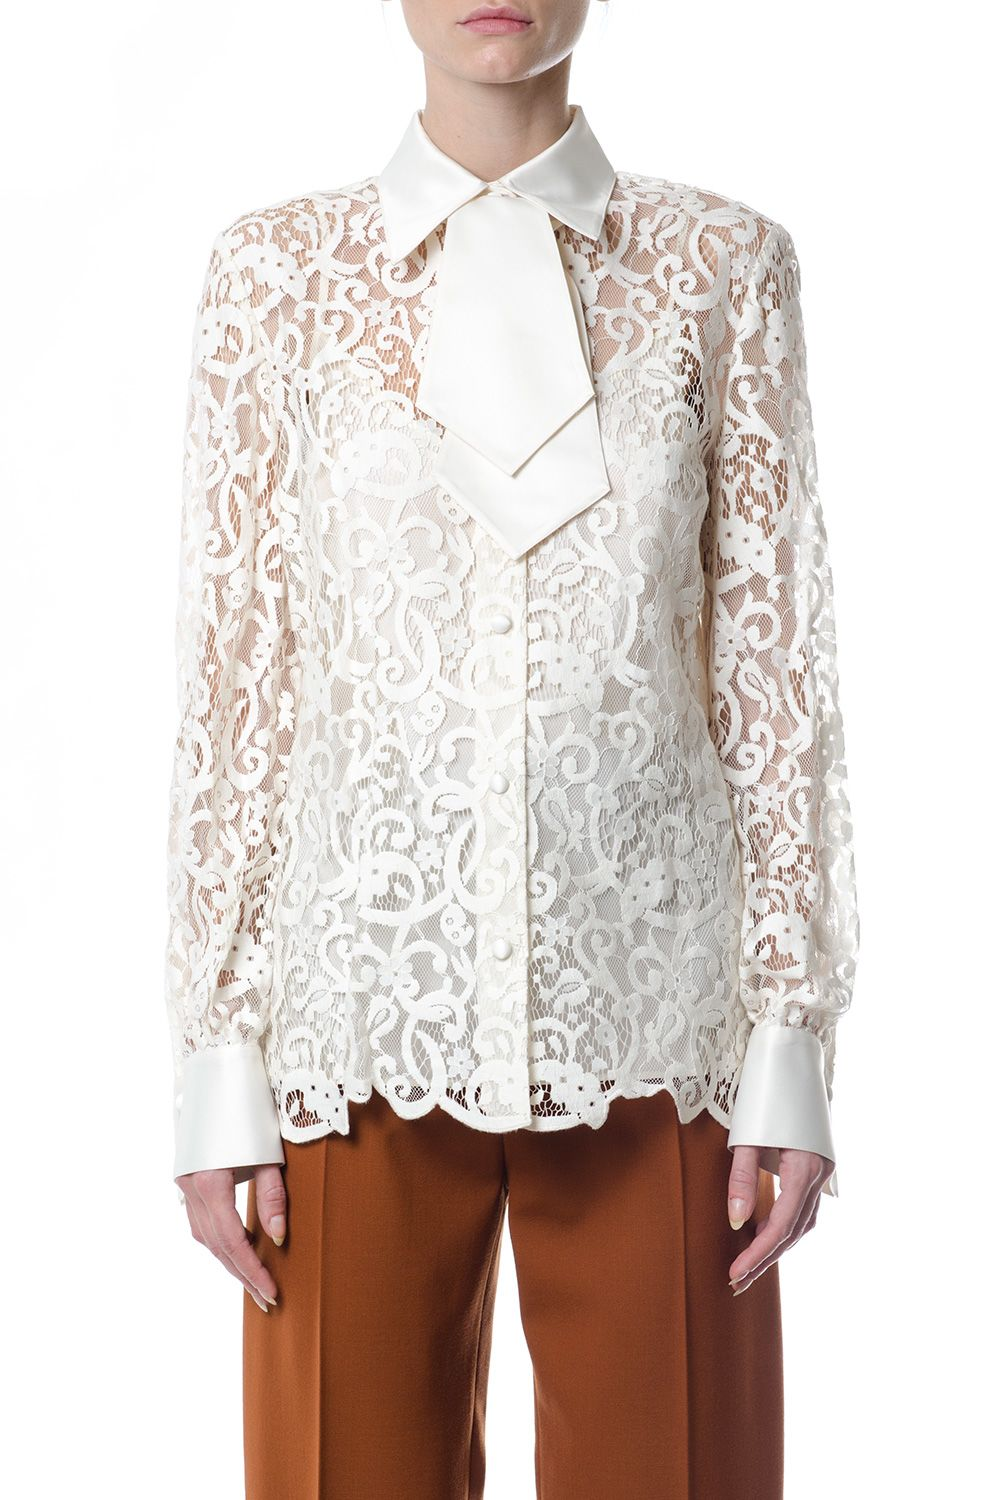 Tory Burch Rosie Lace Shirt